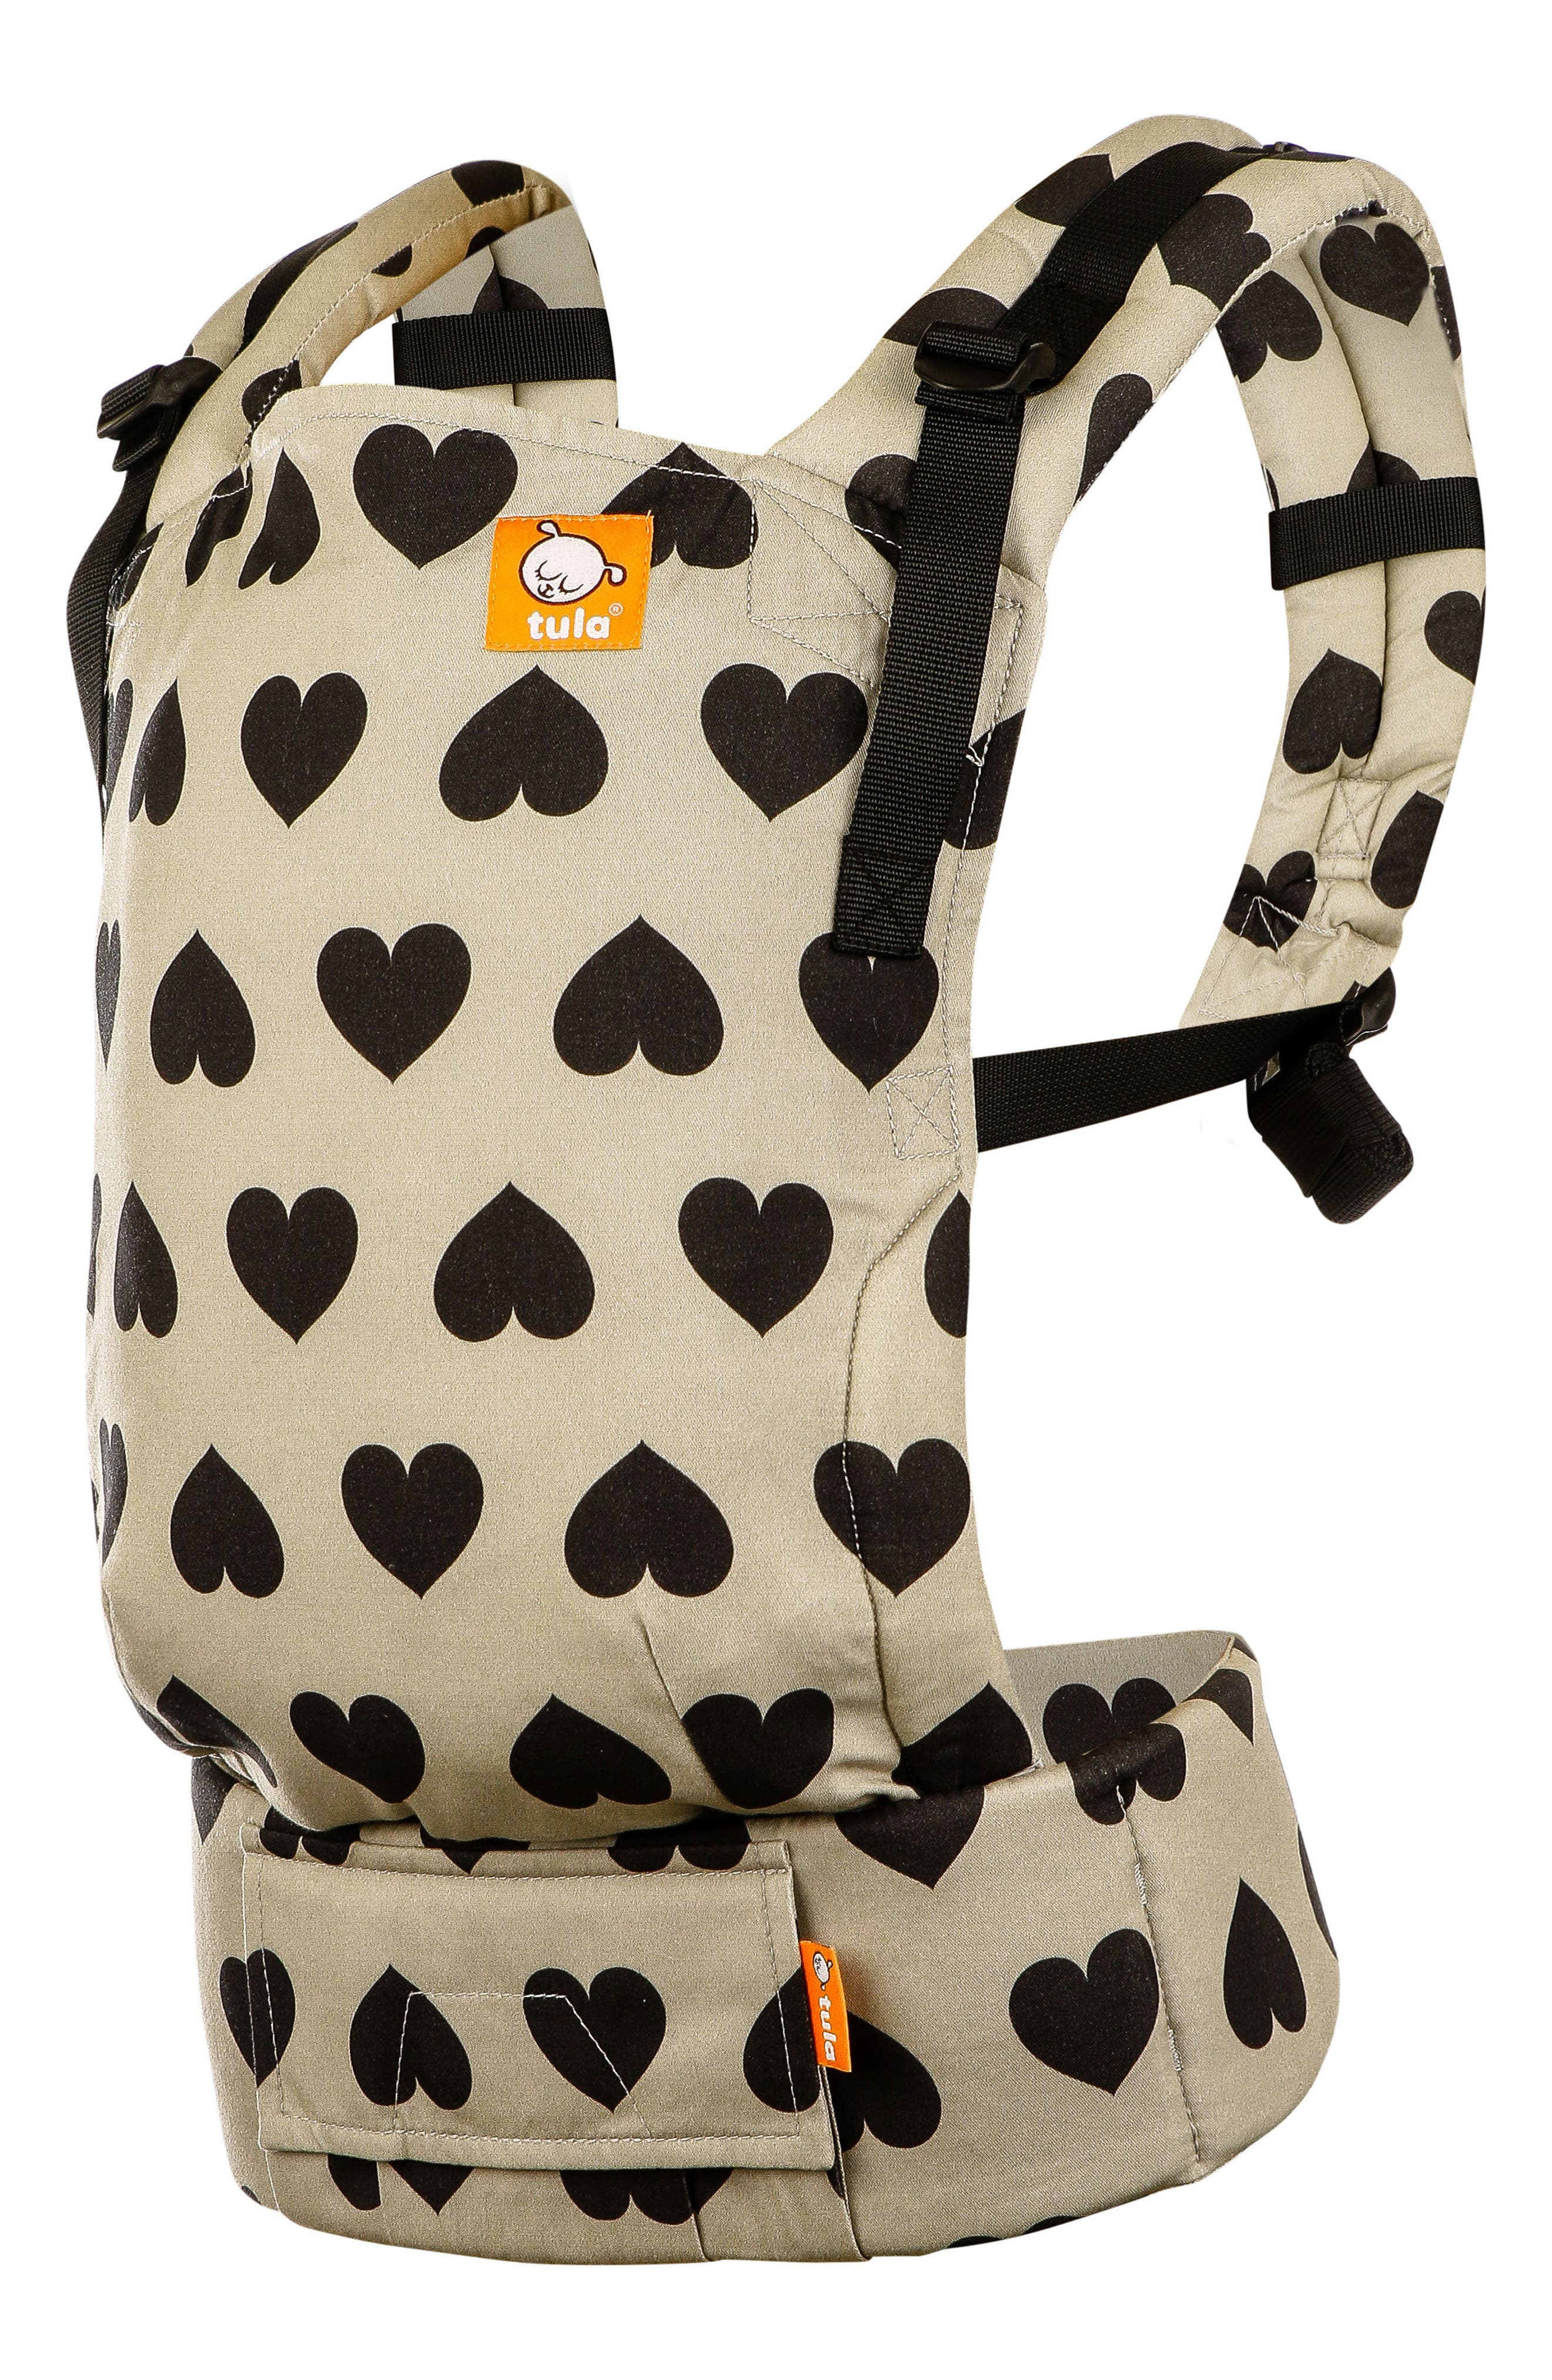 Lamour - Free-to-Grow Baby Carrier,                             Main thumbnail 1, color,                             LAMOUR